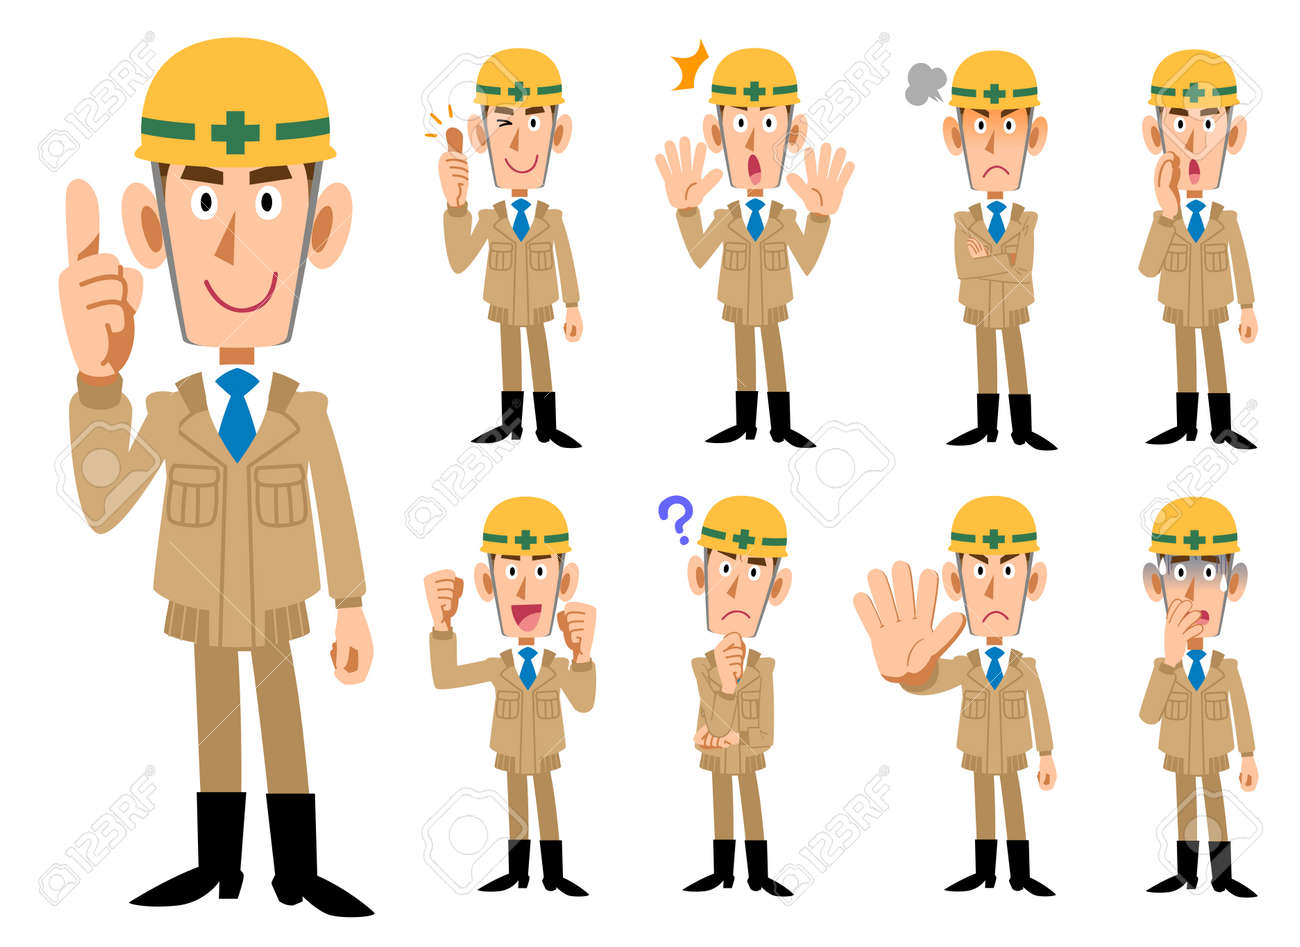 Construction industry _ Men in beige colored work clothes _ 9 types of poses set - 105075146